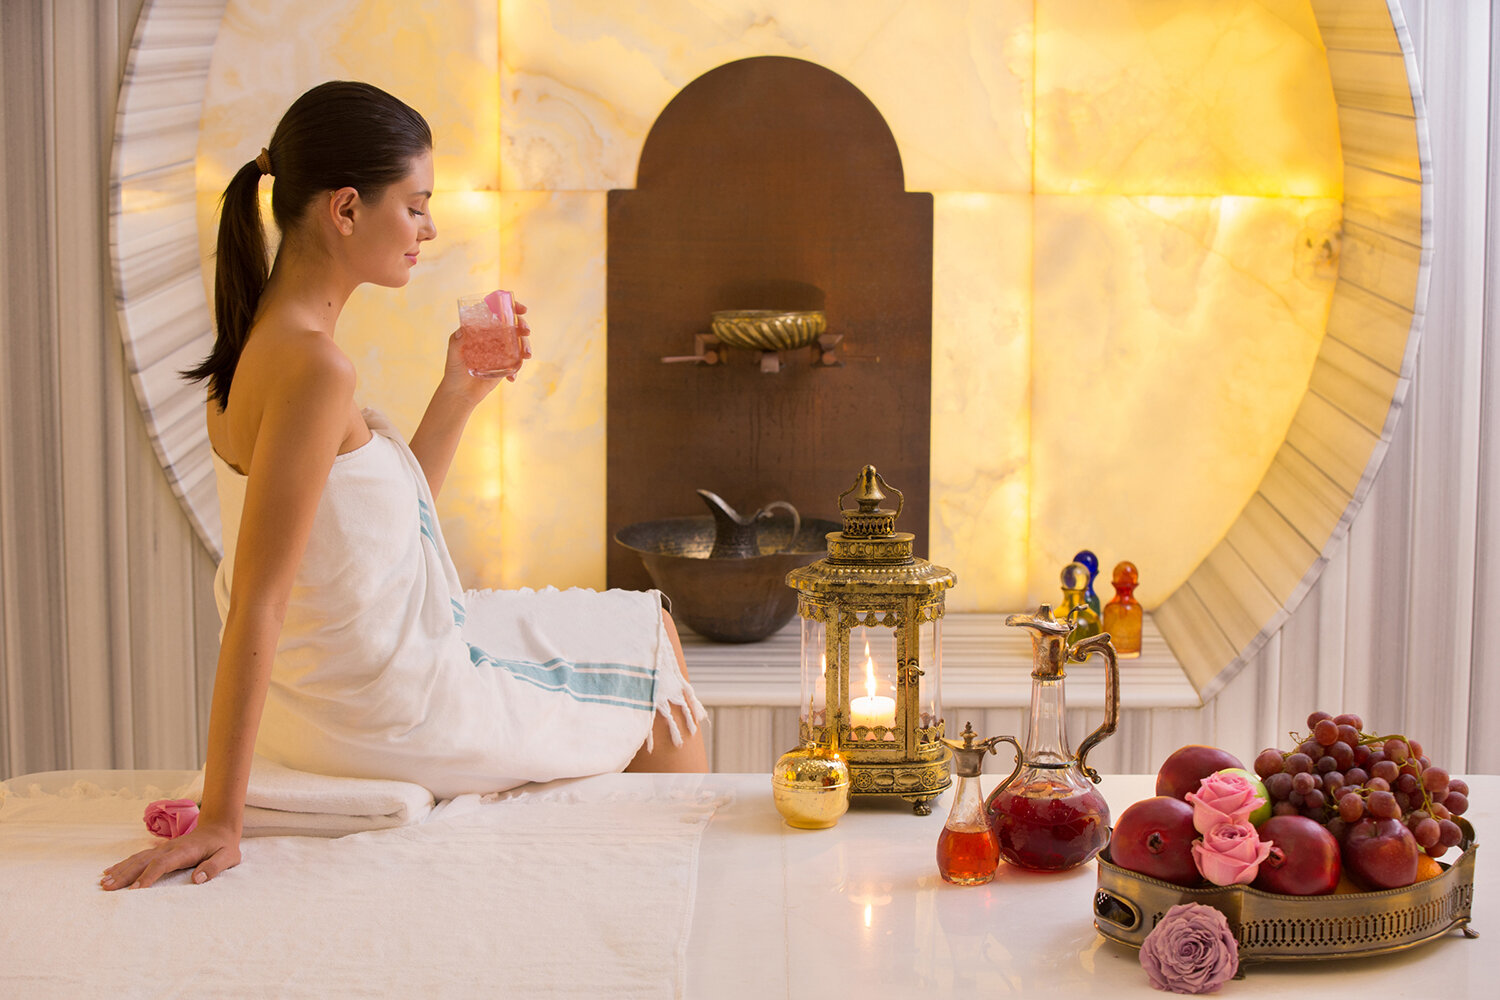 The spa serves fresh and dried fruit, nuts, a wide selection tea and coffee, and detox waters.